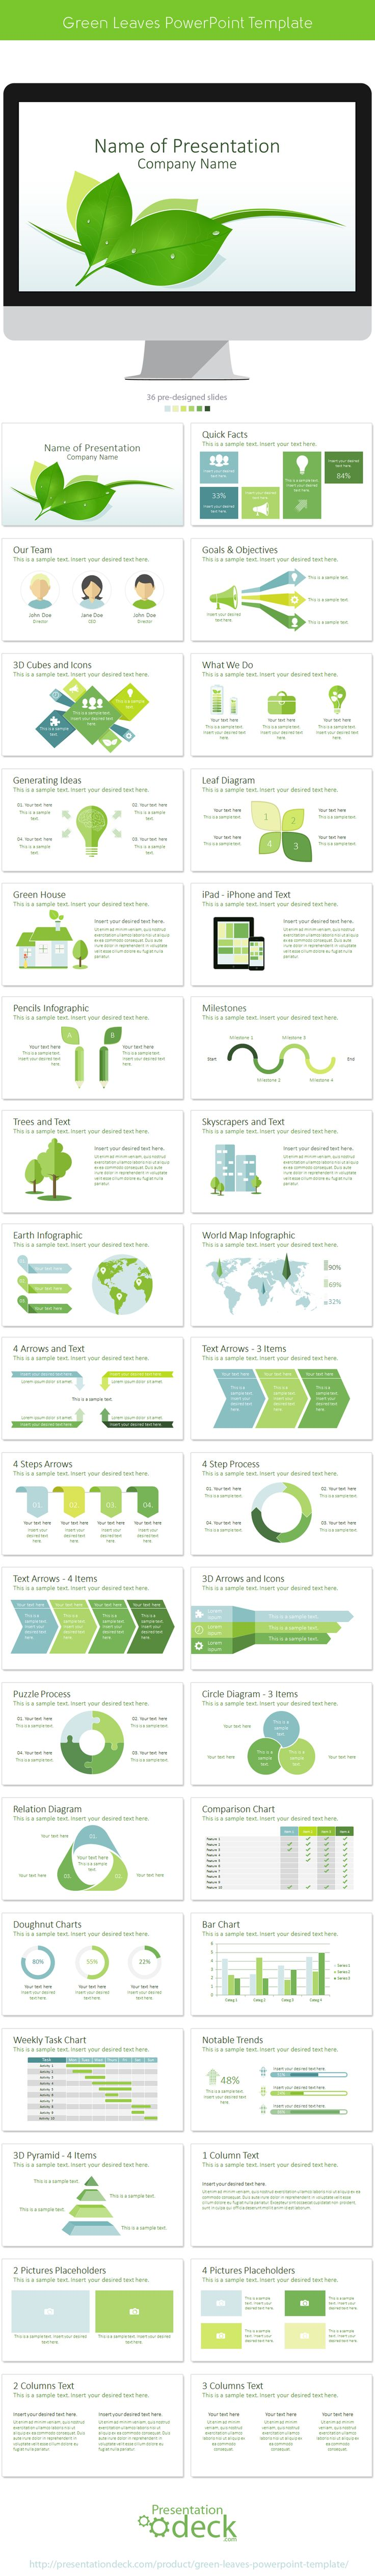 Green Leaves PowerPoint Template with 36 pre-designed slides. #presentations #powerpoint #green